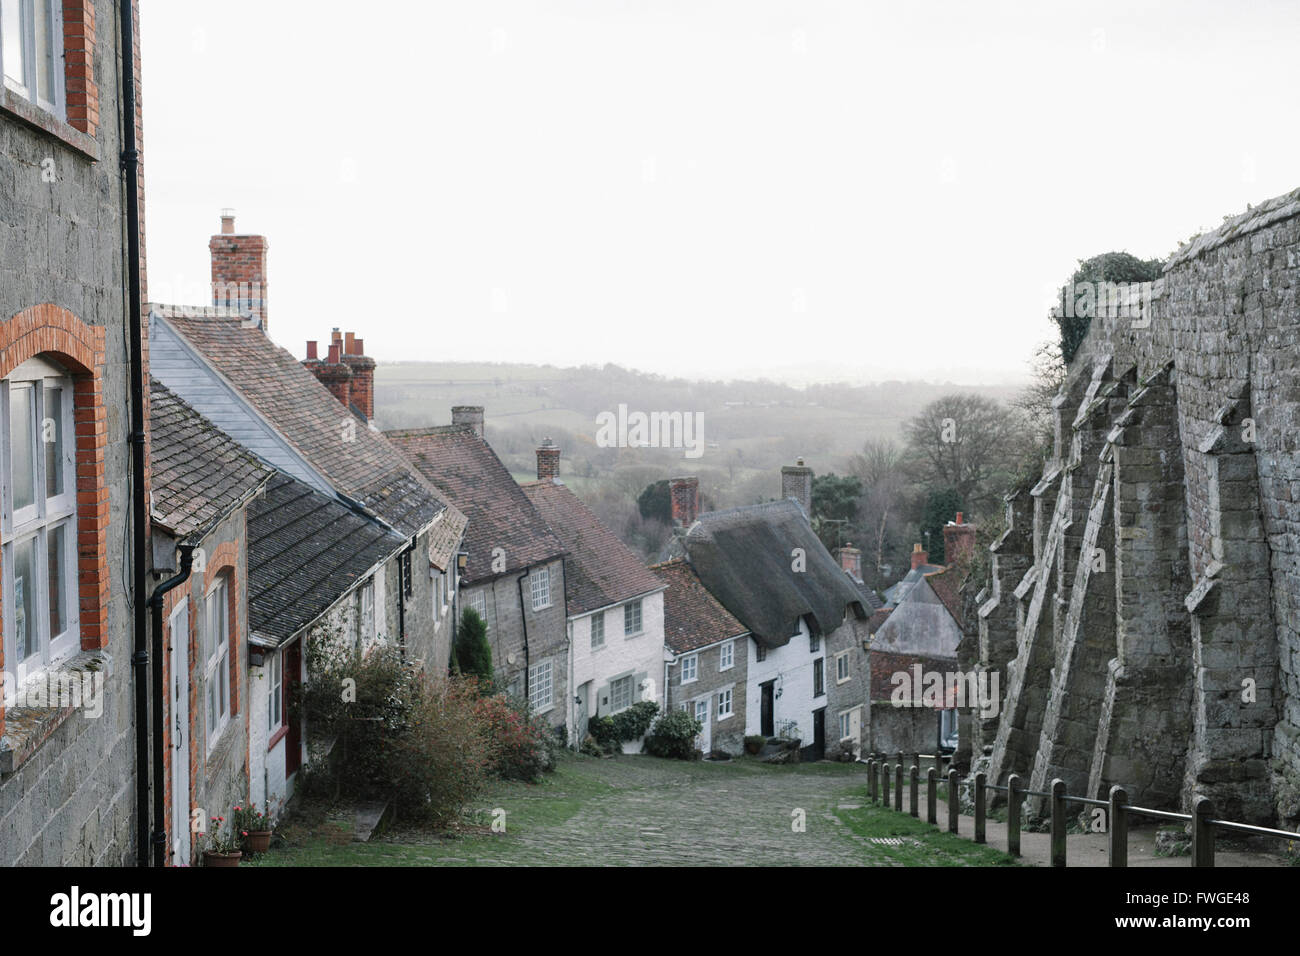 Gold Hill, a steep cobbled street in Shaftesbury, lined with cottages. - Stock Image